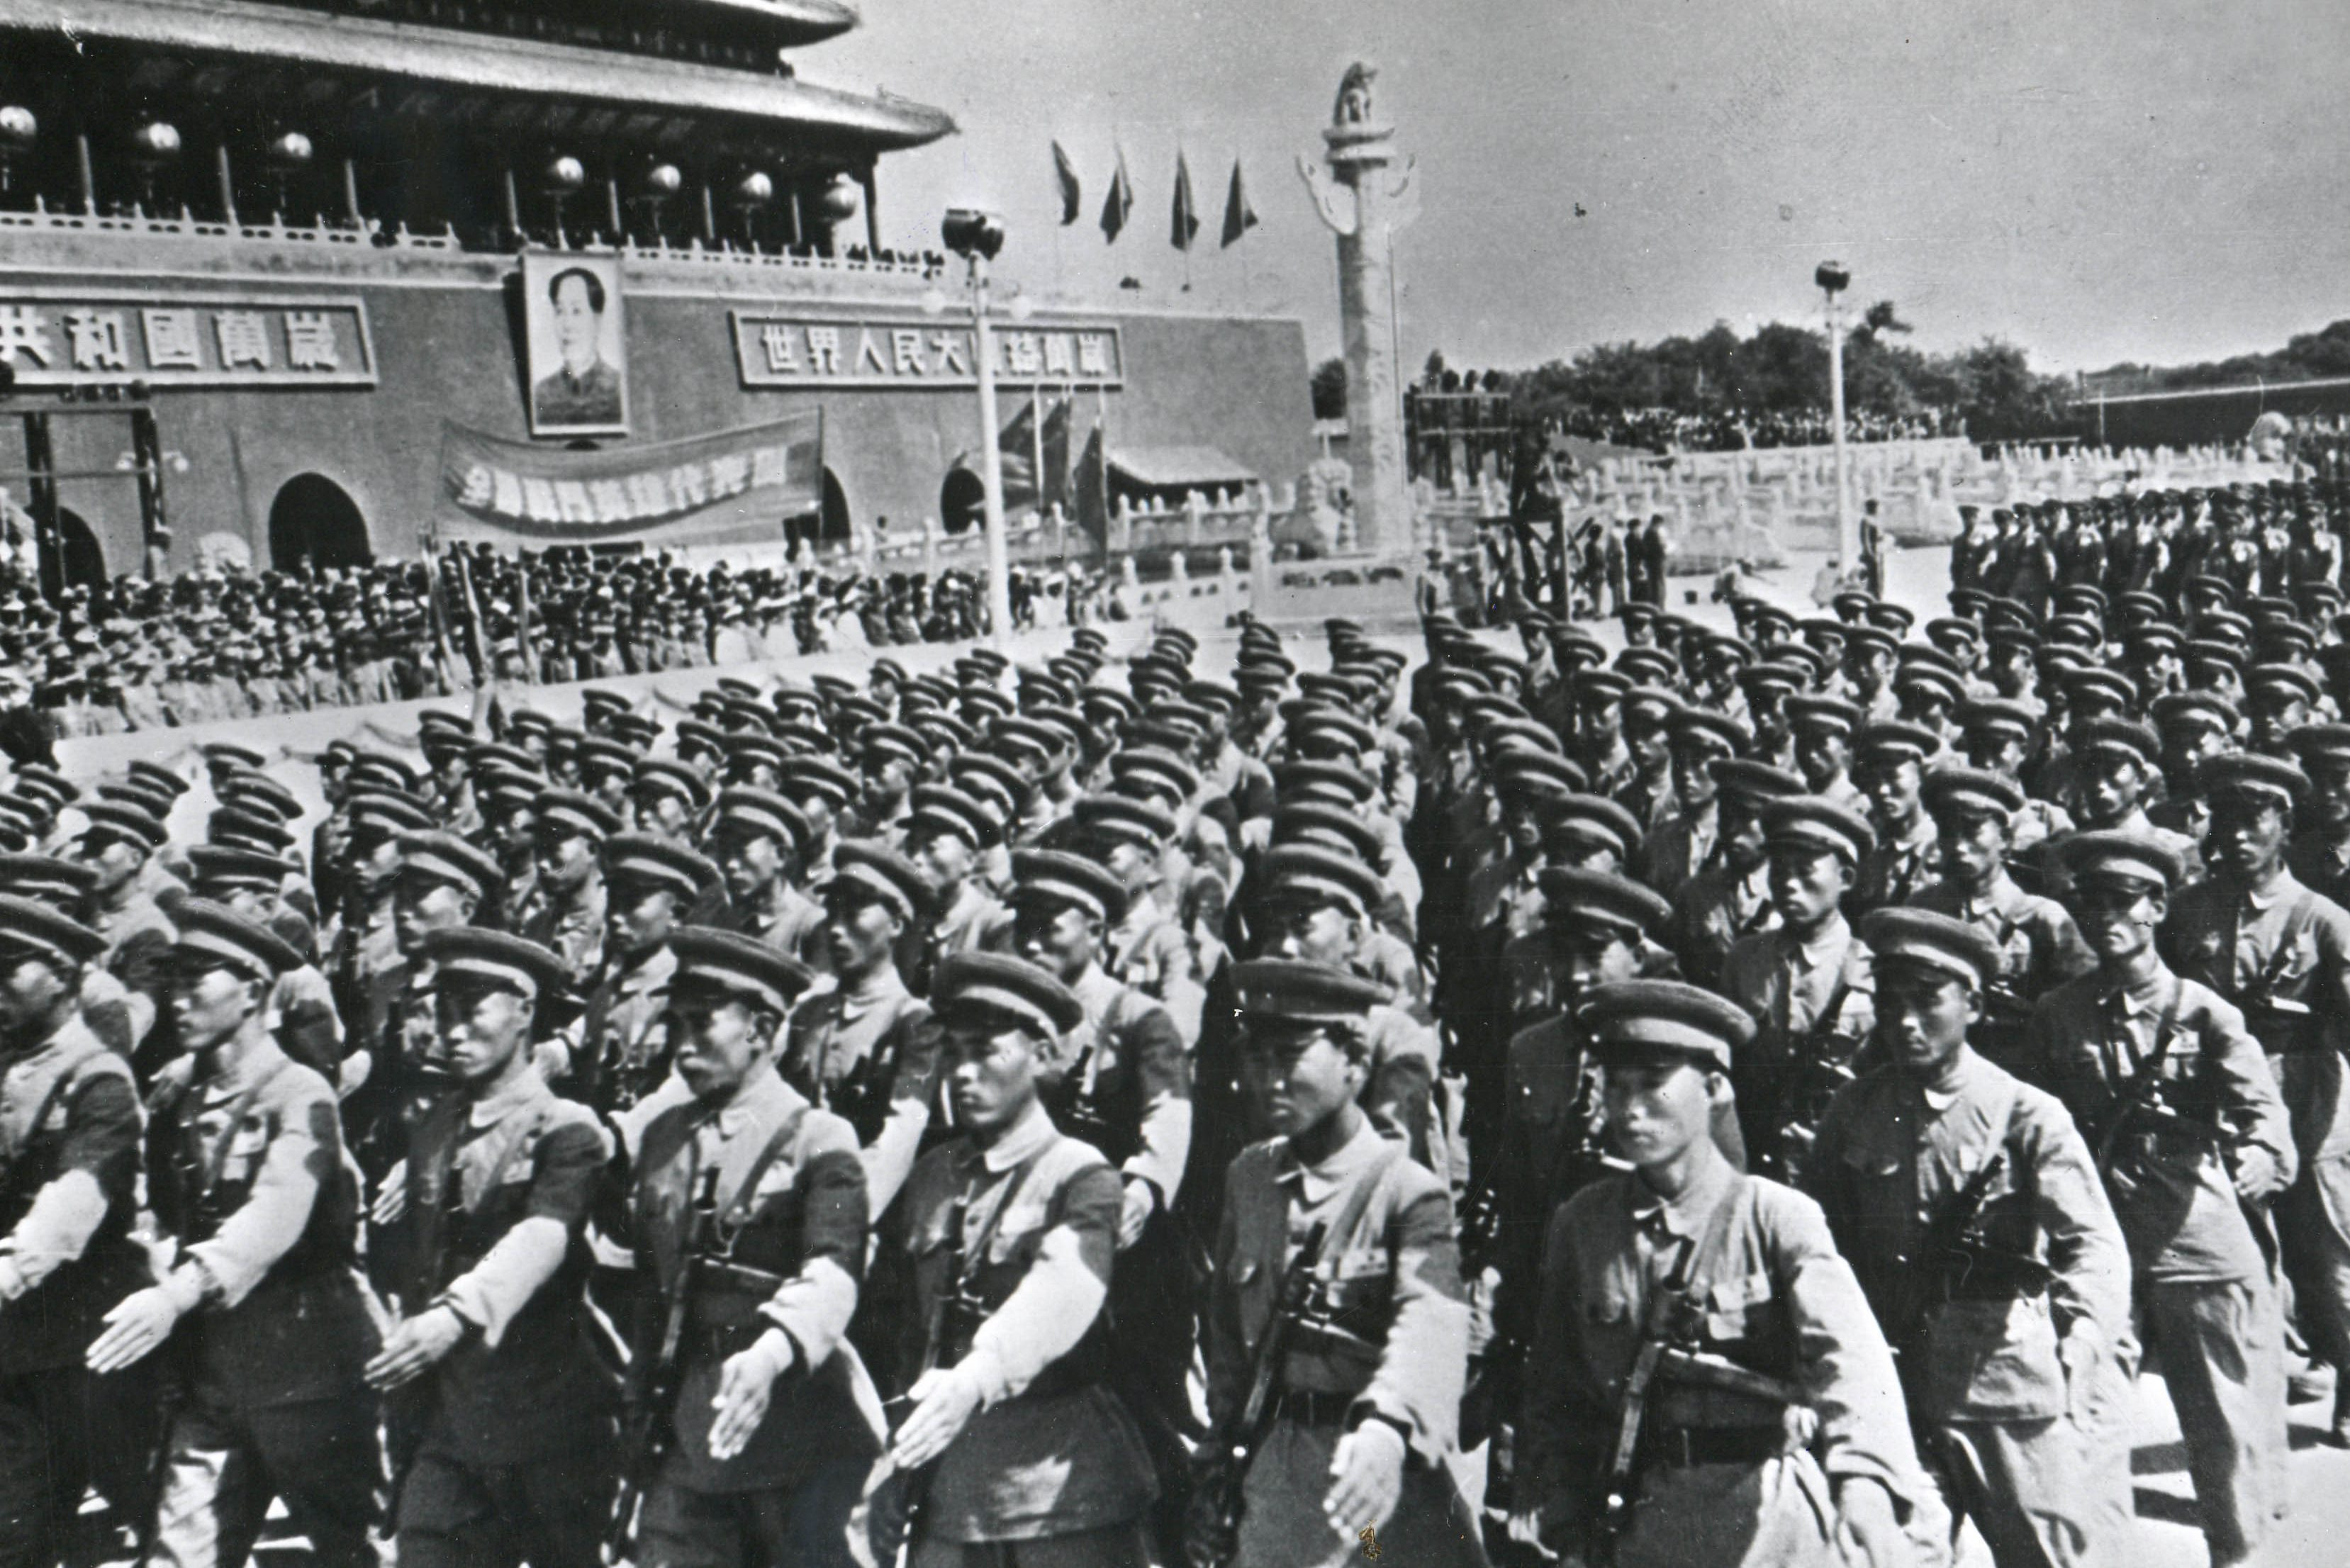 1950: A parade of the Red Army passing in front of Mao Zedong, who, like Vladimir Lenin, based his political and military analyses on the irreconcilable difference between attack and defence. (Photograph by PhotoQuest/Getty Images)